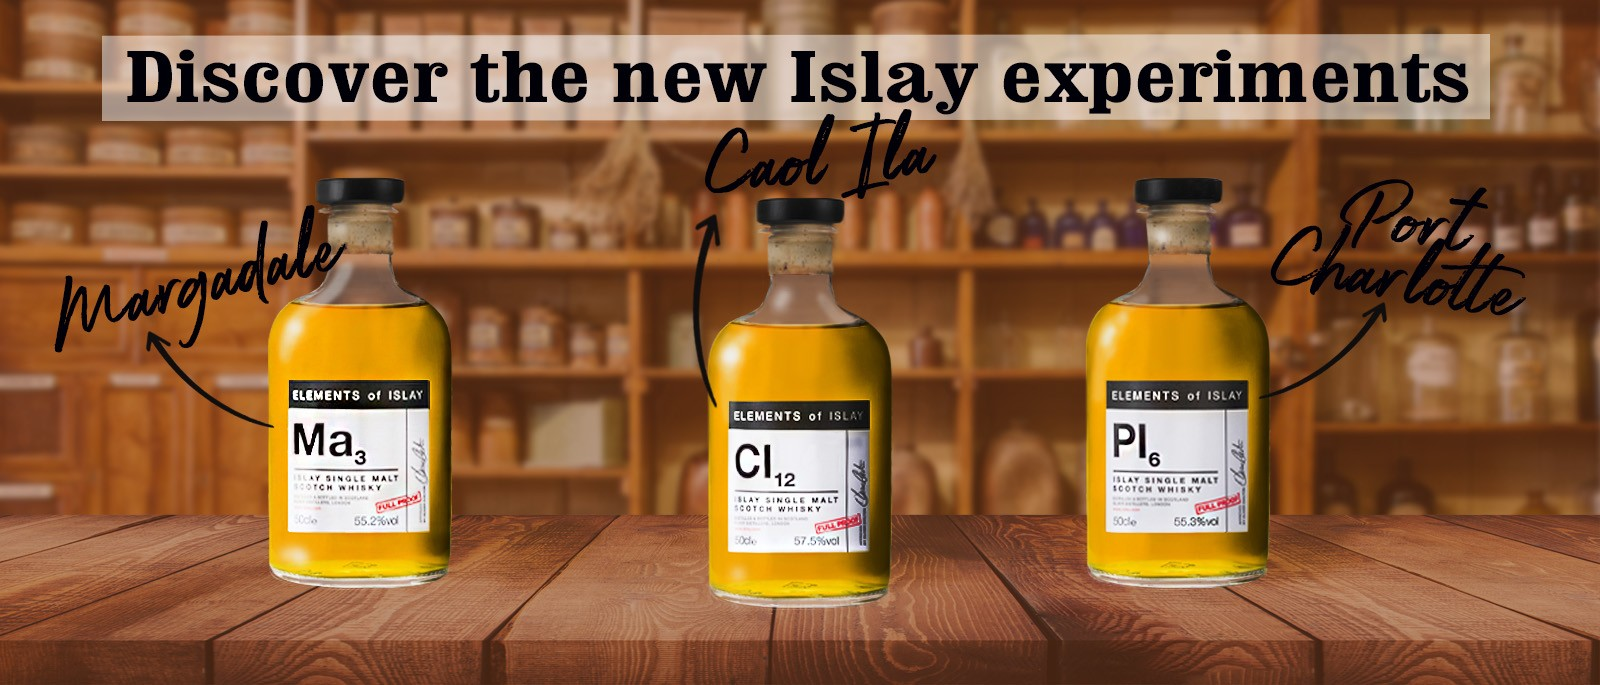 Elements of Islay News: Ma3, Cl12, Pl6